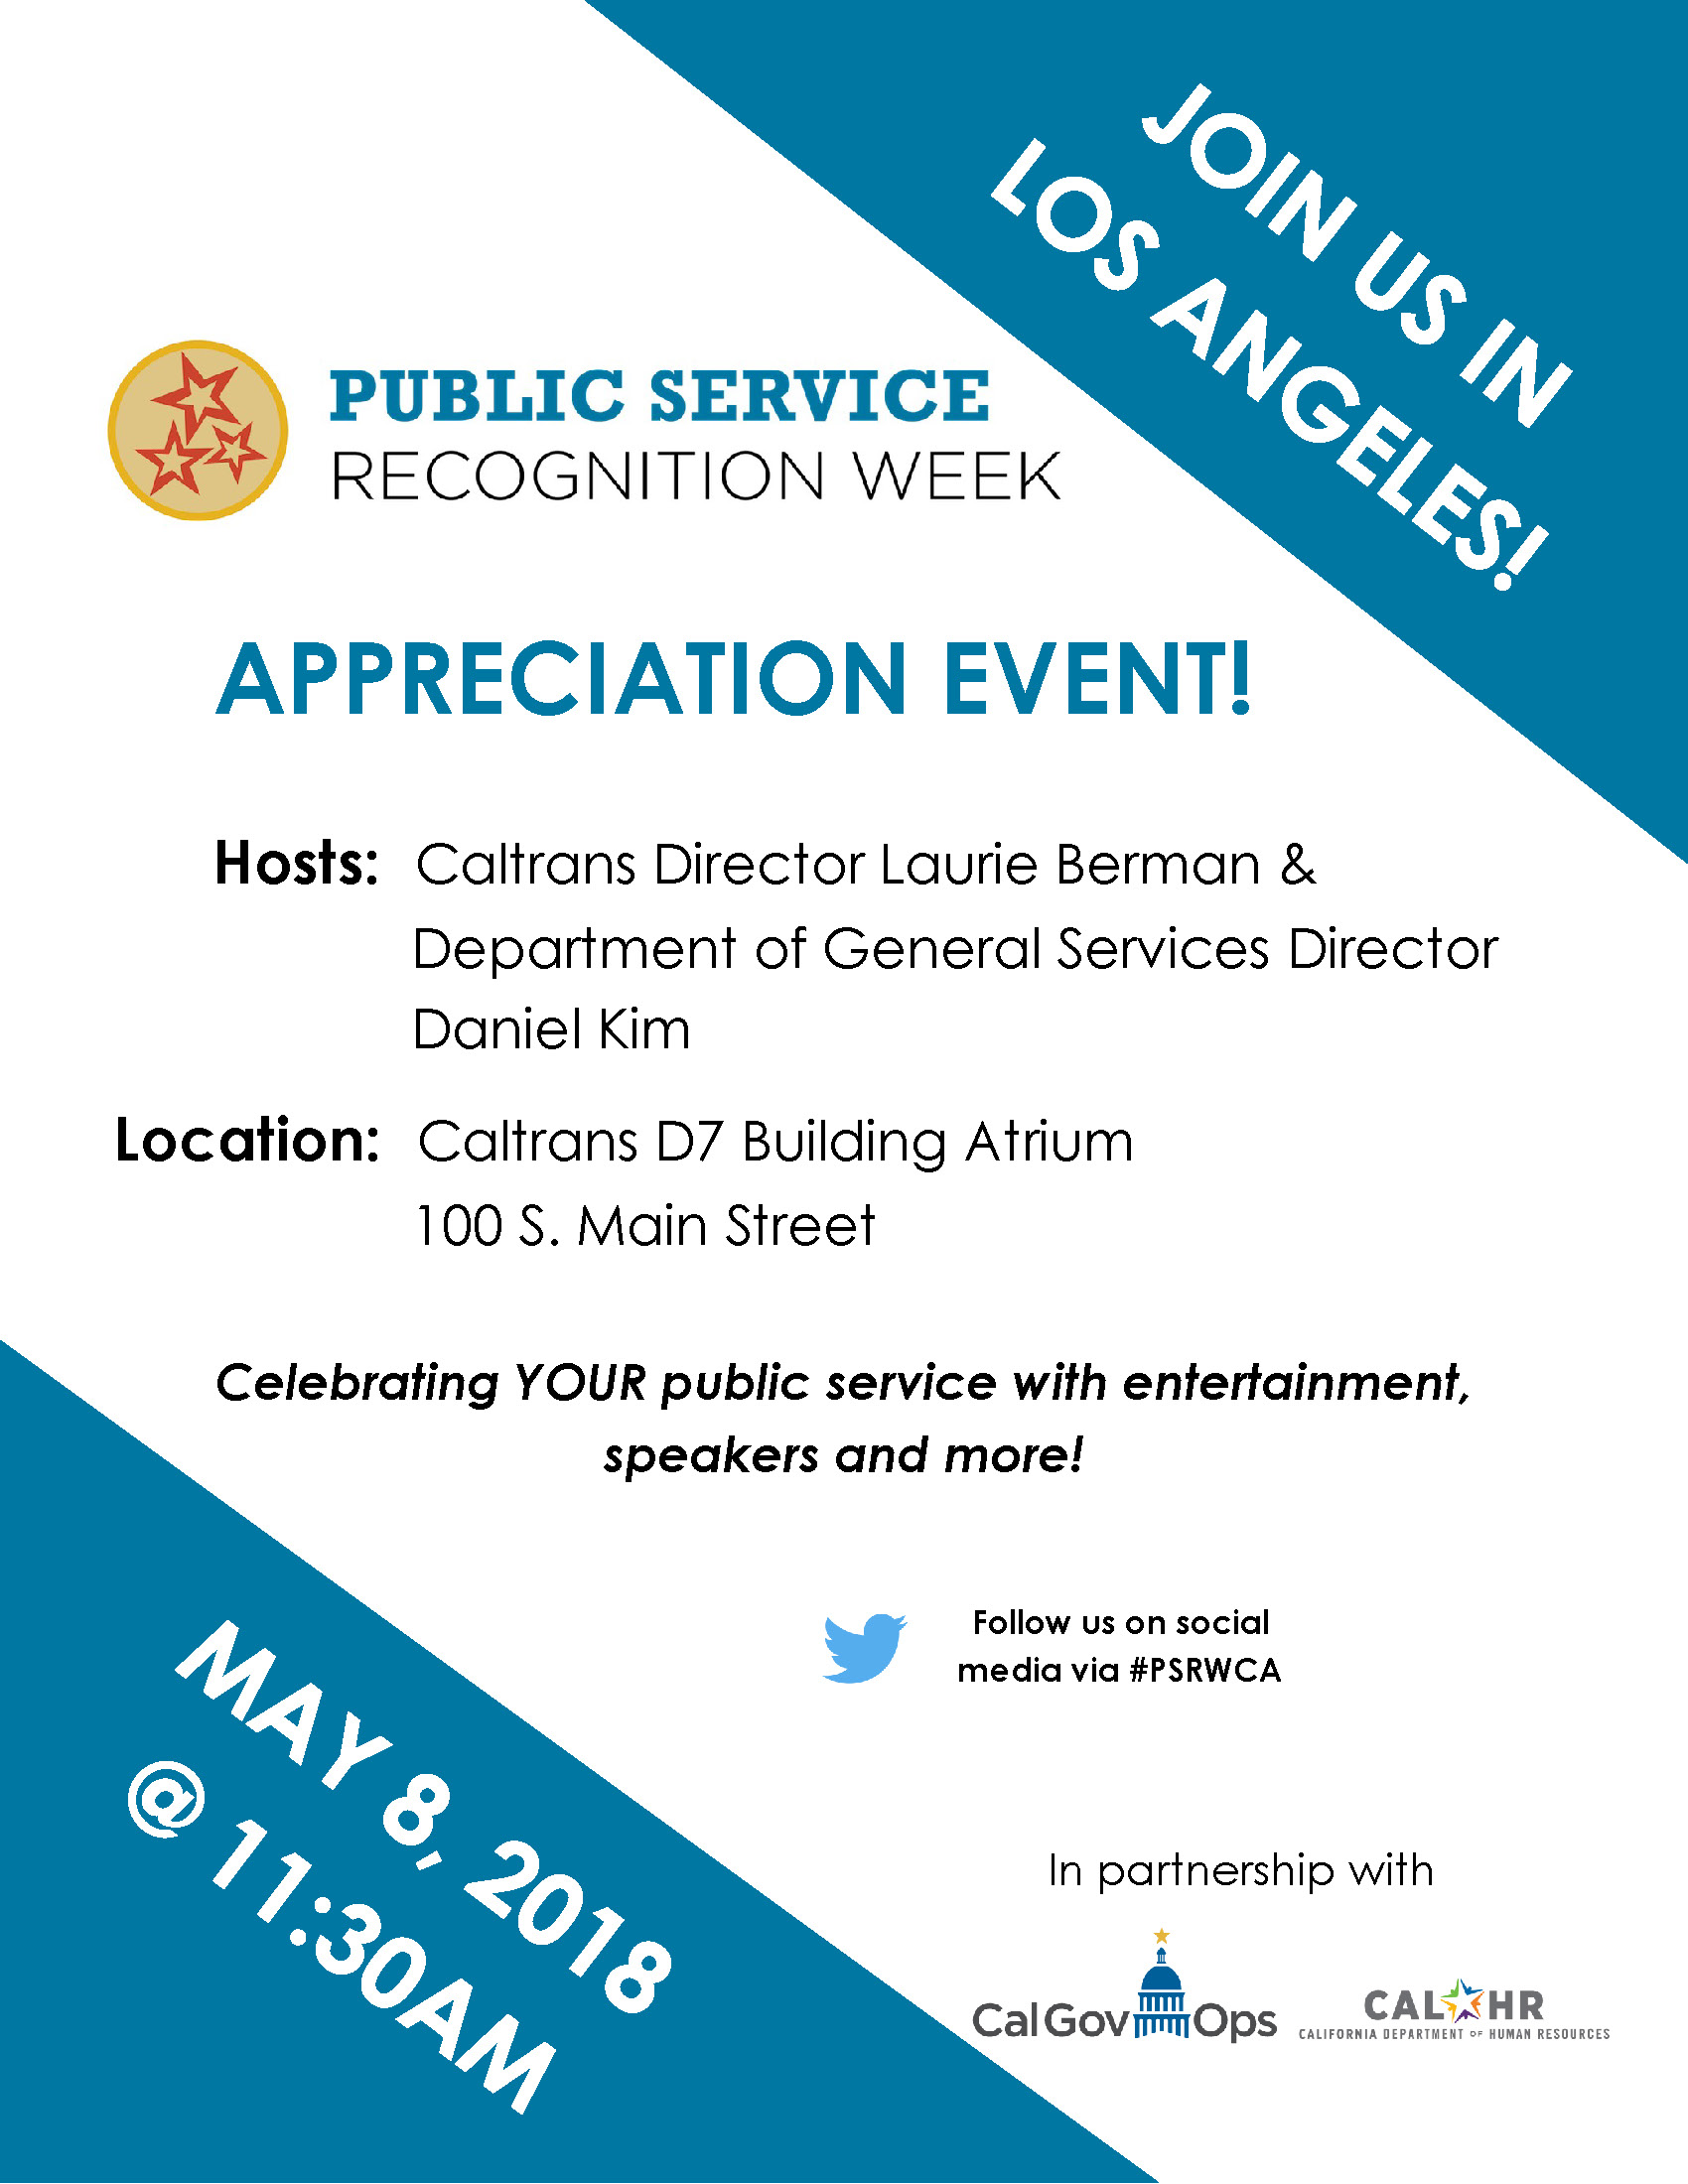 Public Service Recognition Week 2018 Los Angeles Flier